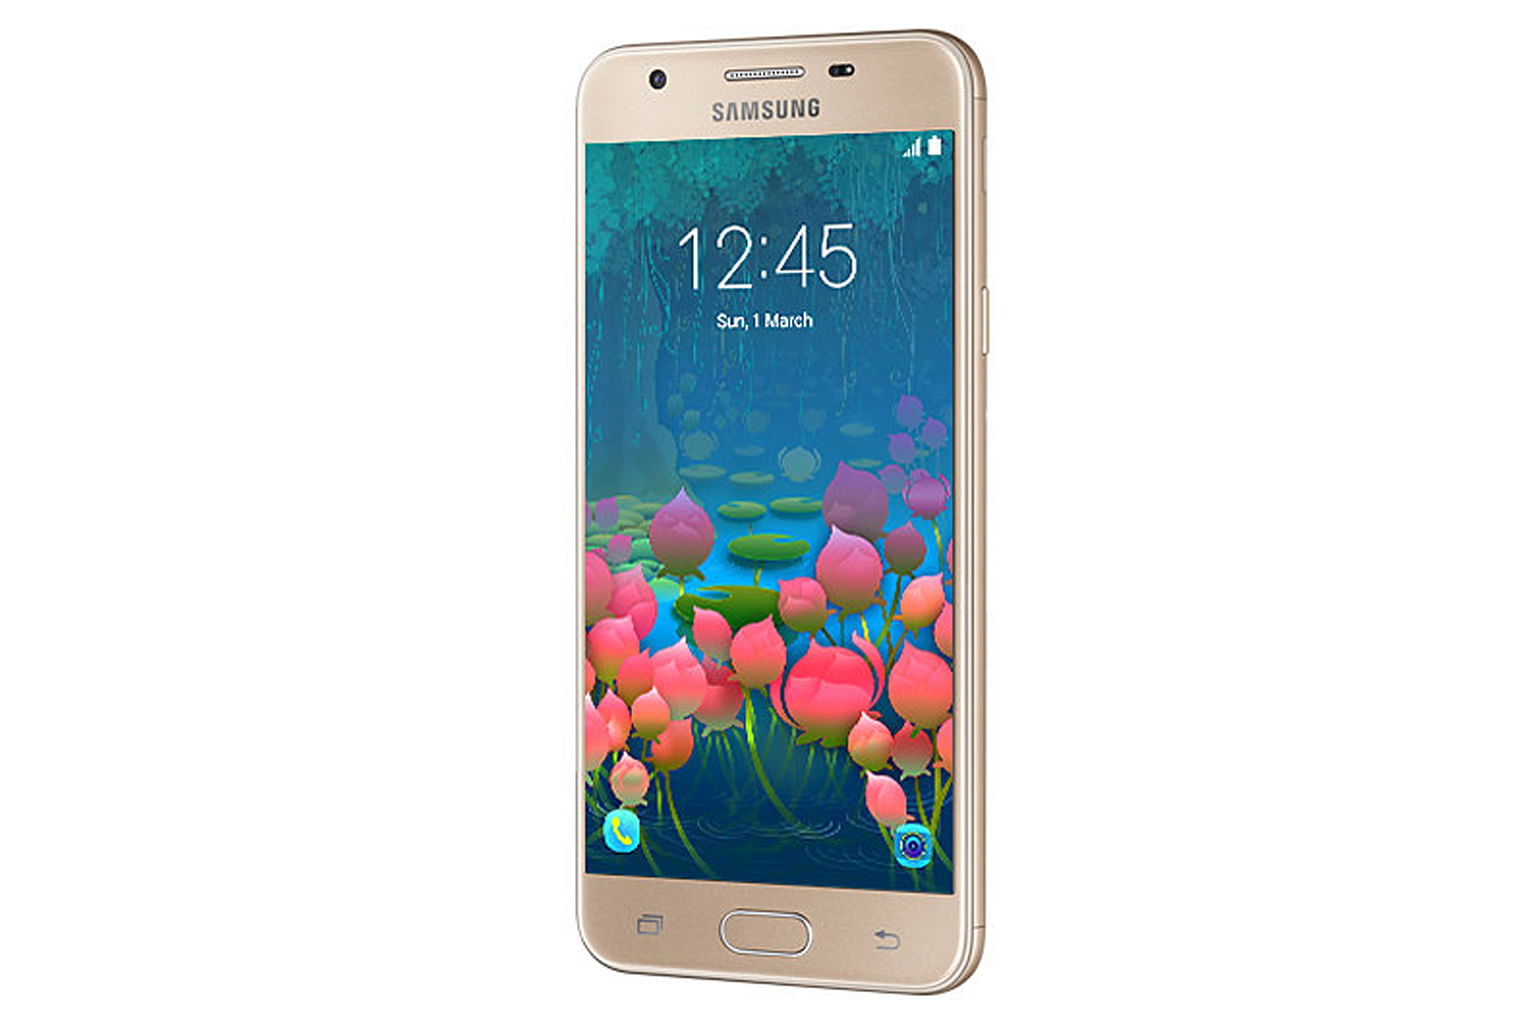 A Solid Phone Without The Frills Smartphones News Top Stories Samsung Galaxy J7 Prime Sm G610f Straits Times